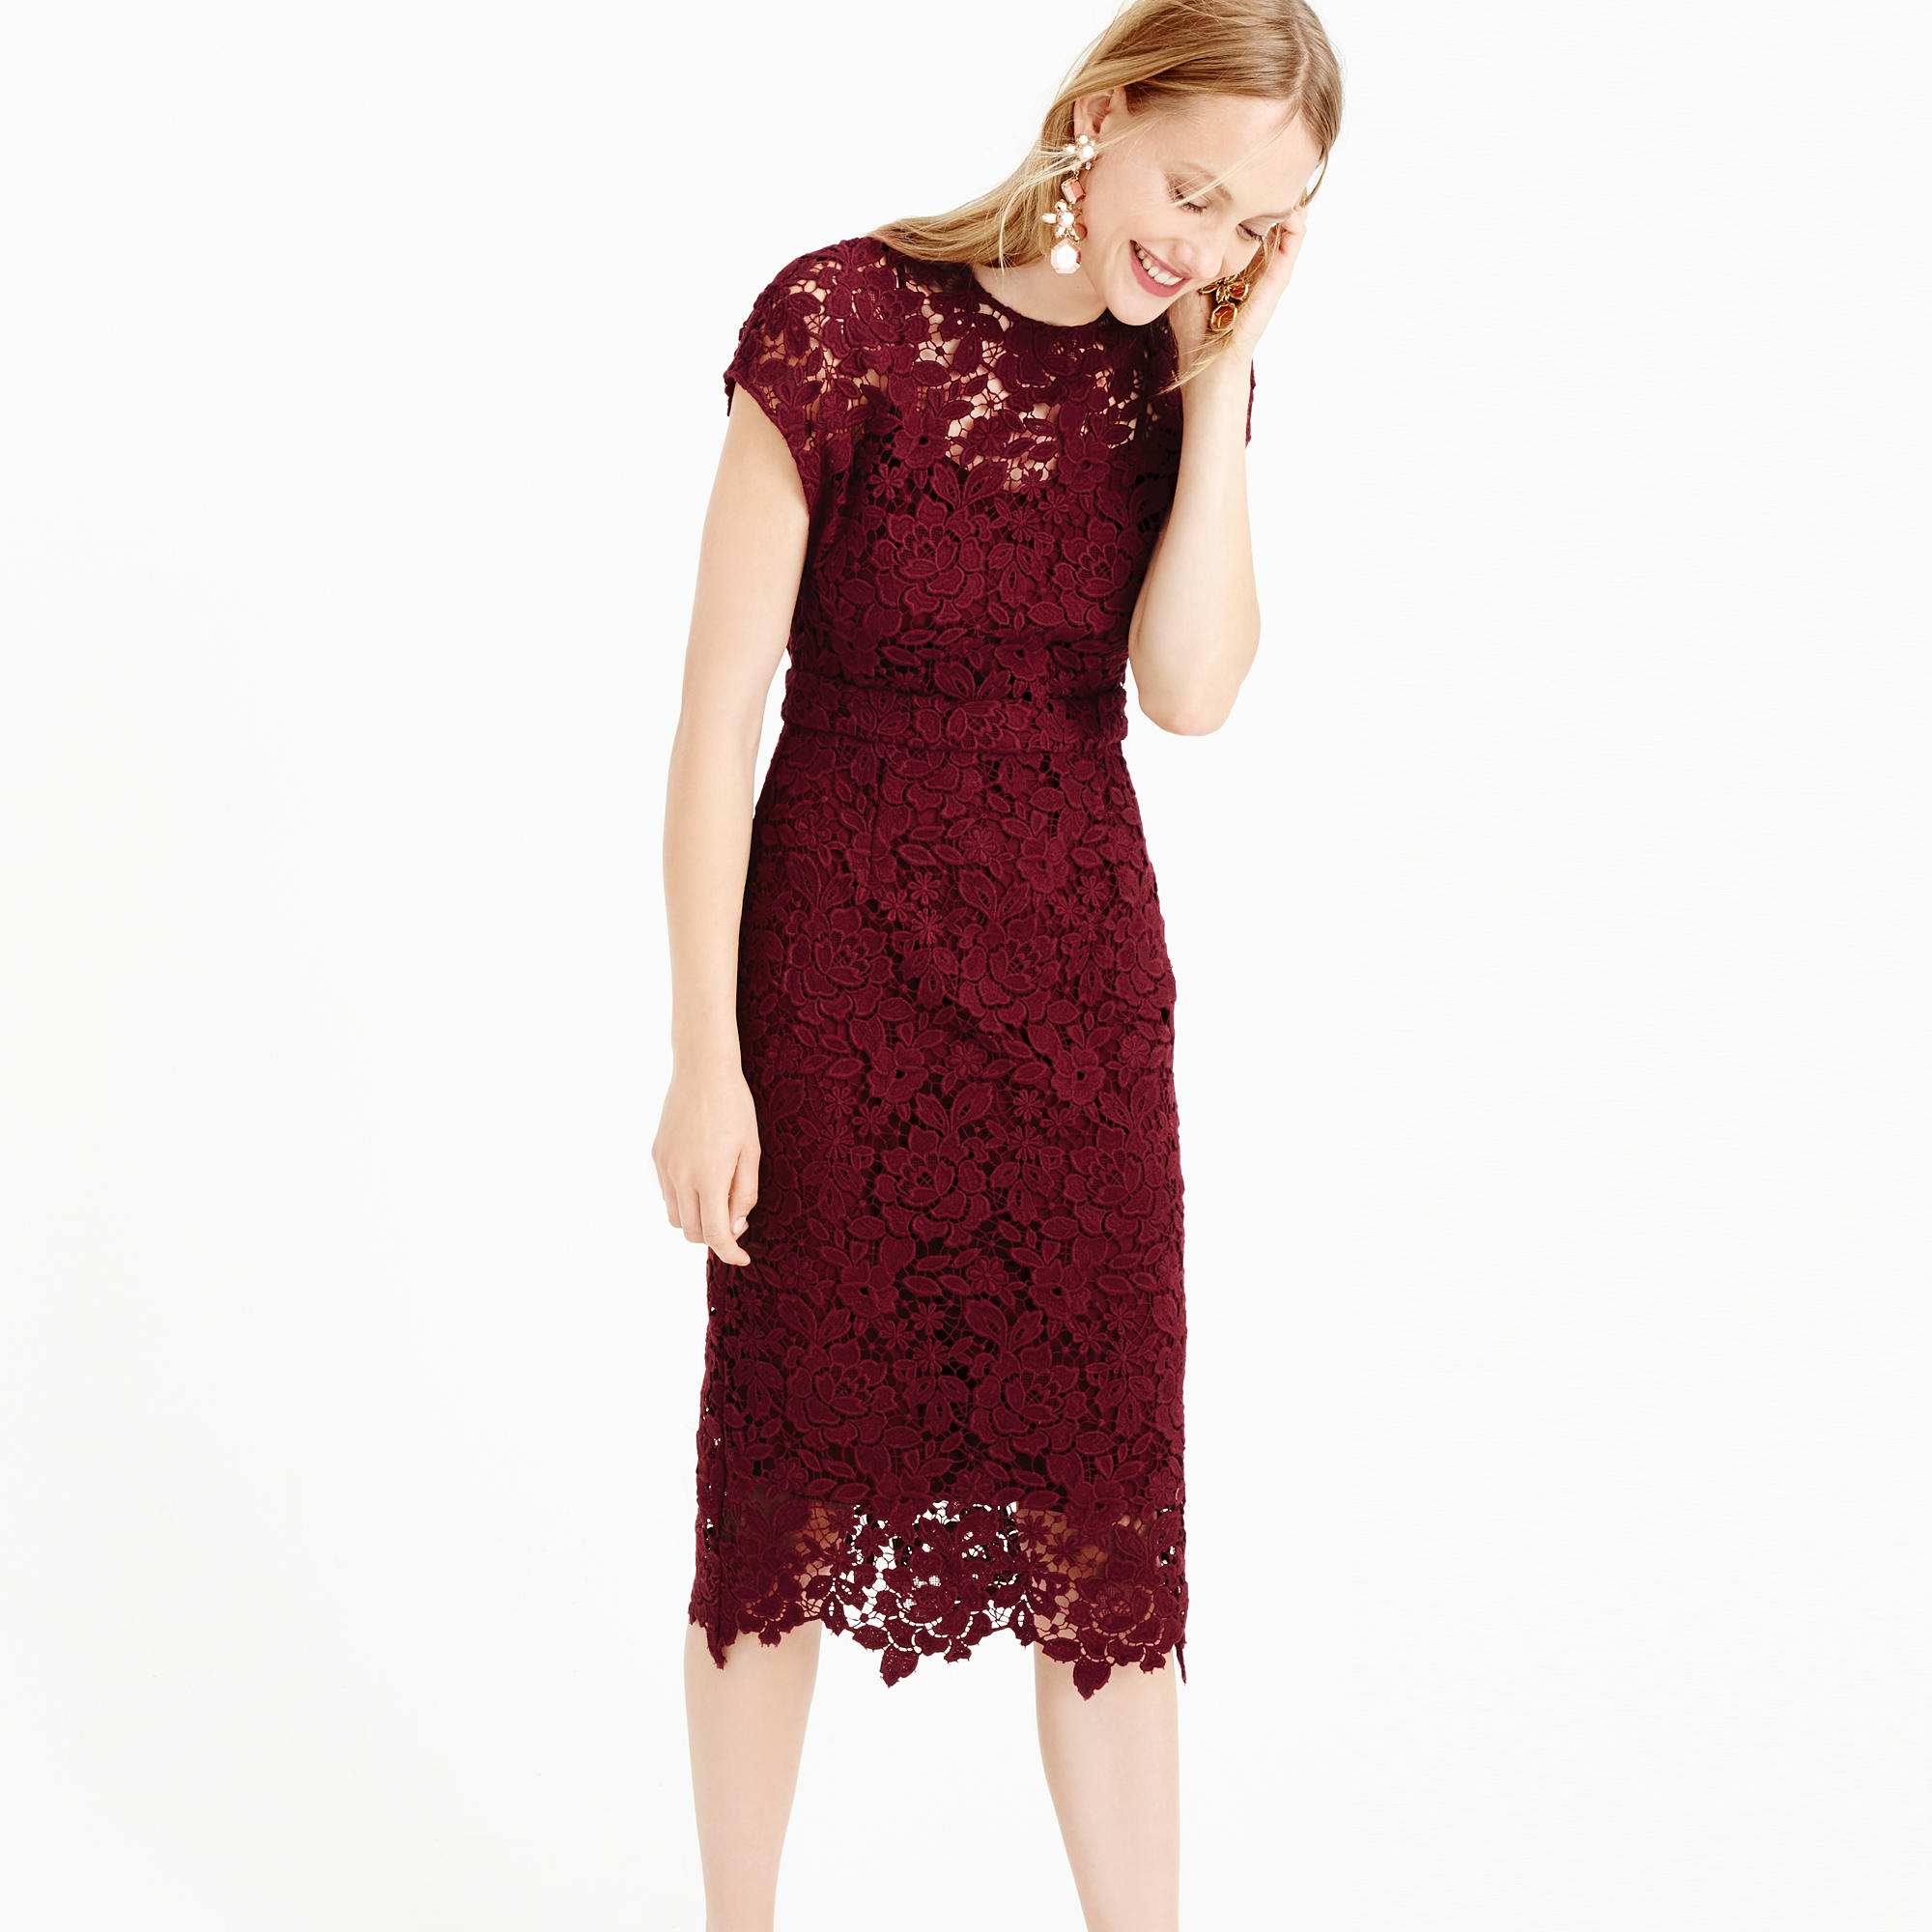 J.crew Collection Scalloped Lace Dress In Purple (dark